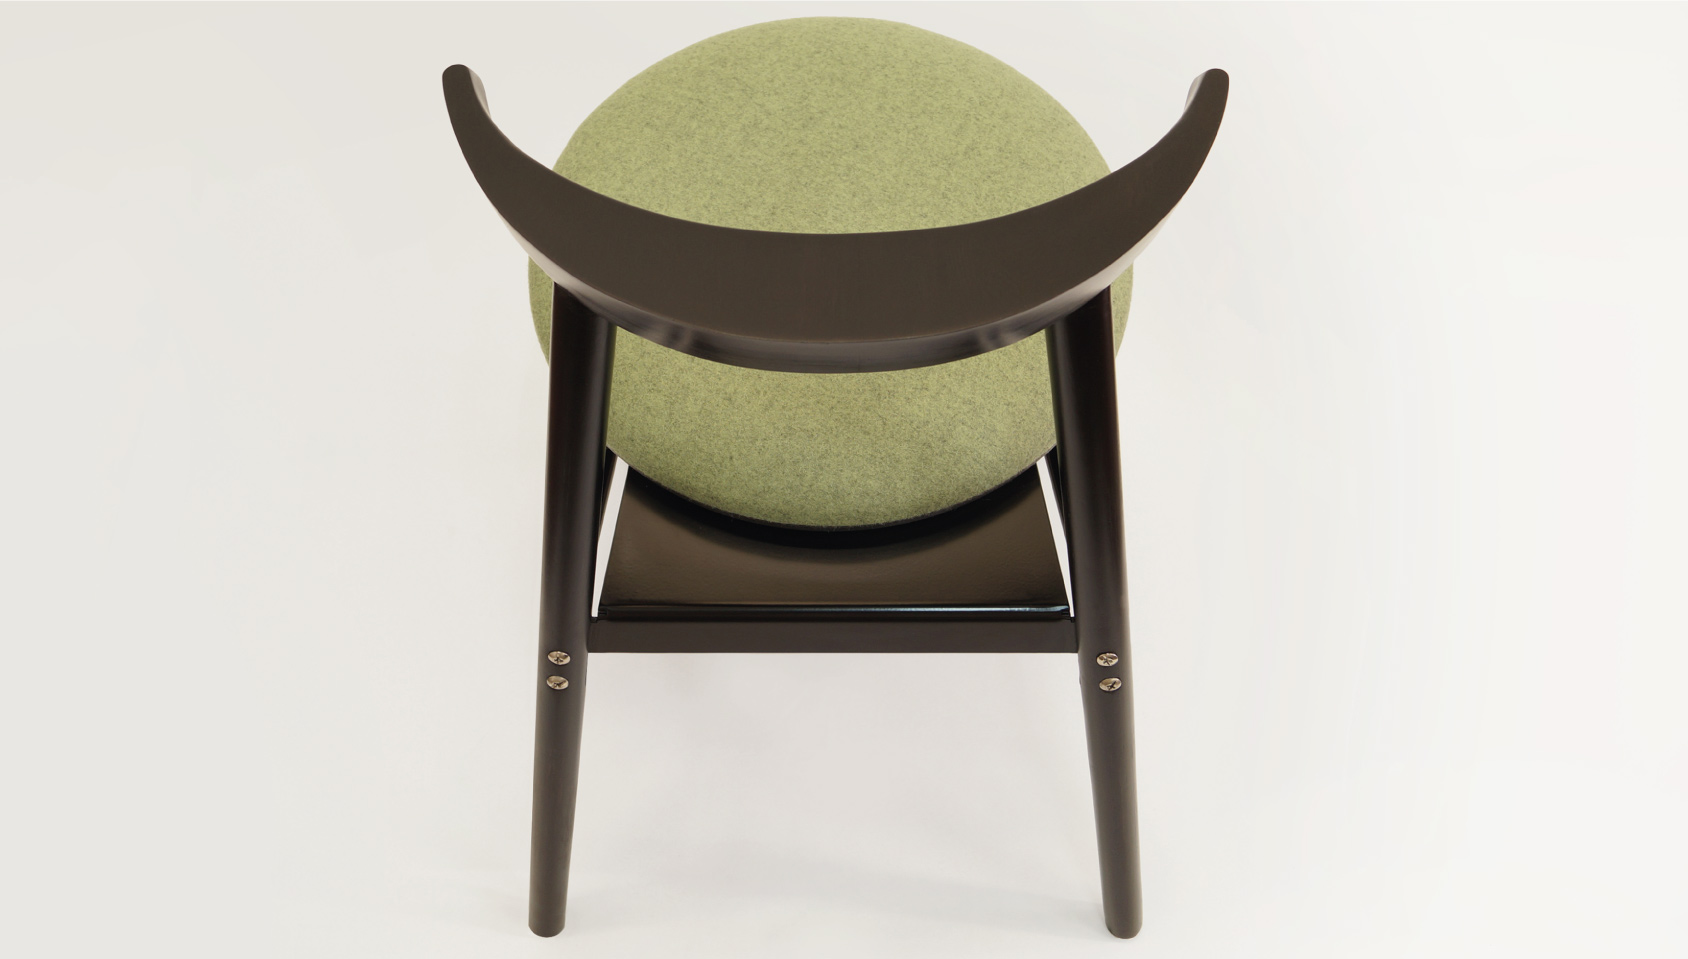 Islero dining chair top view